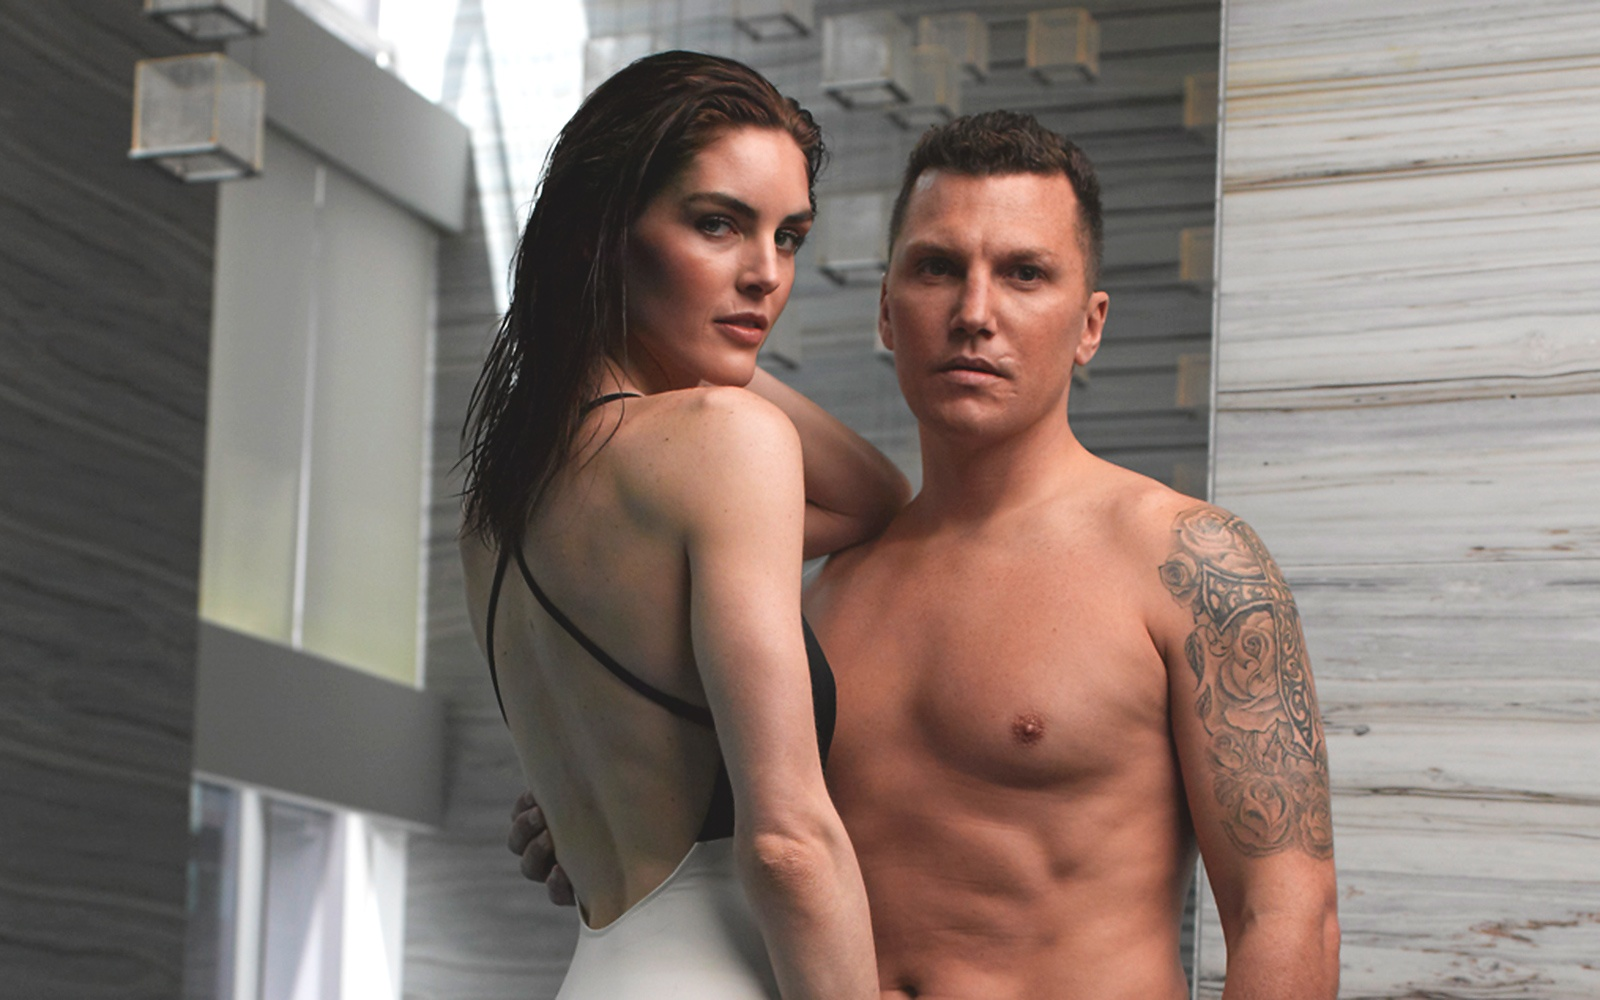 Hilary Rhoda & Sean Avery